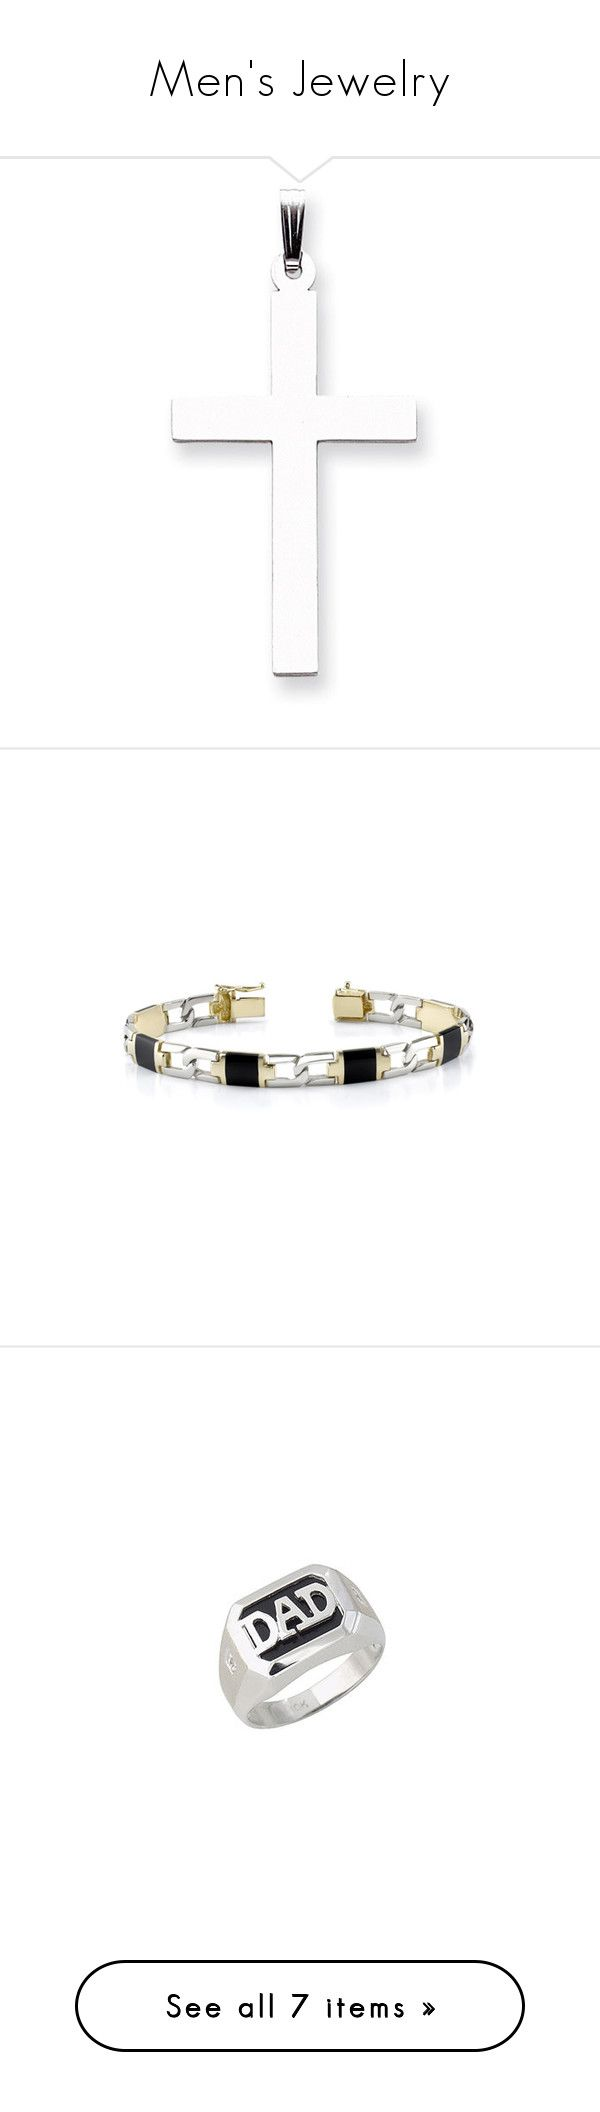 """""""Men's Jewelry"""" by applesofgoldjewelry ❤ liked on Polyvore featuring men's fashion, men's jewelry, men's necklaces, mens cross pendant necklace, mens watches jewelry, mens white gold necklace, mens necklaces, 14k gold mens necklace, men's bracelets and mens 14k gold bracelets"""